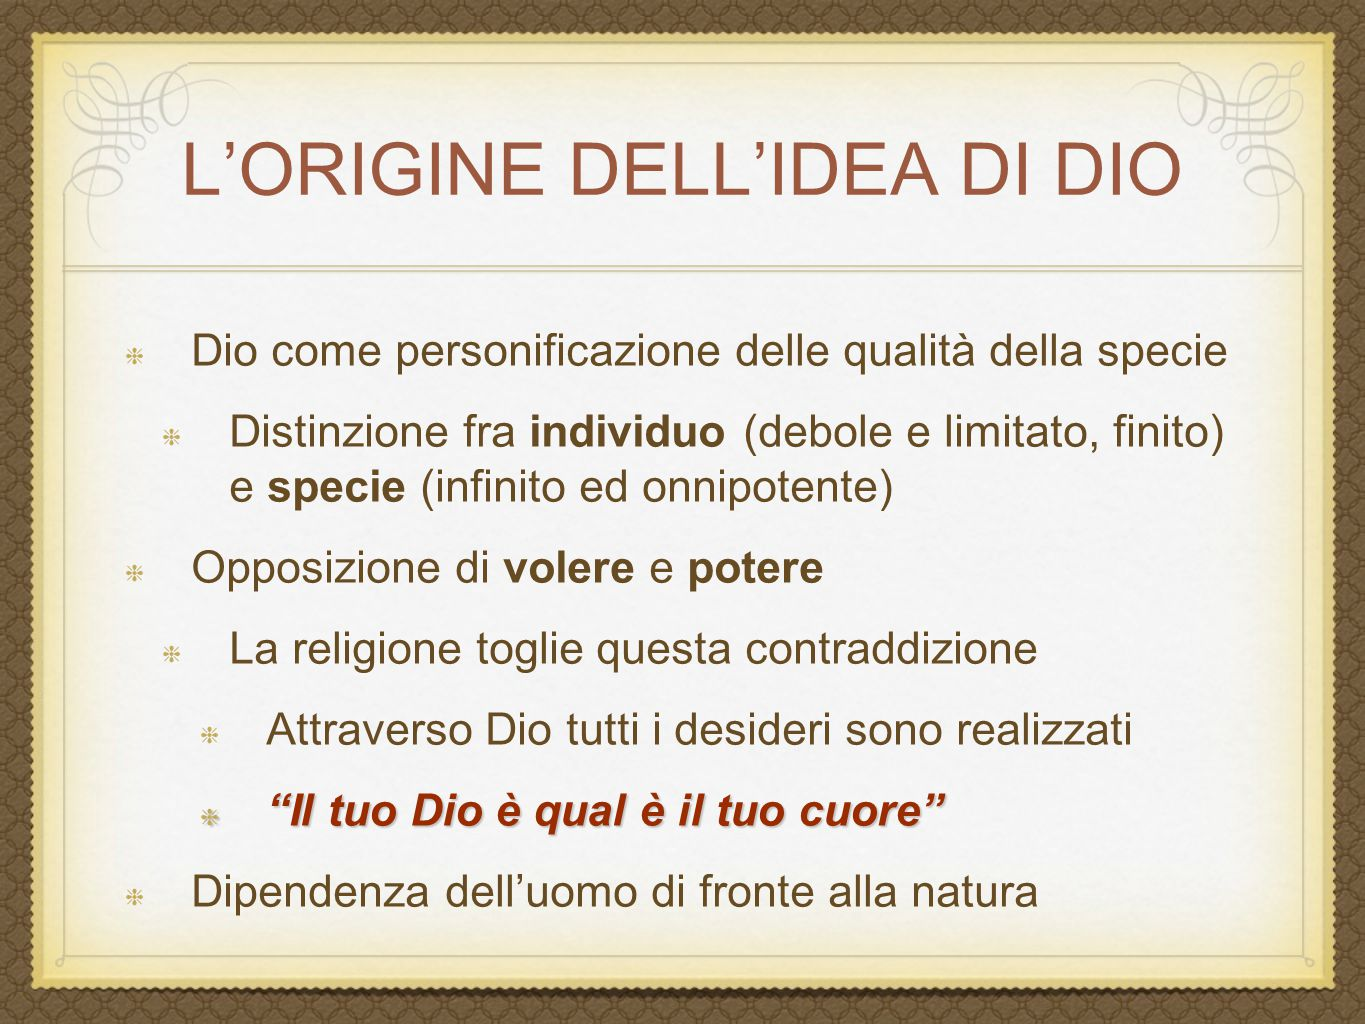 L'ORIGINE DELL'IDEA DI DIO